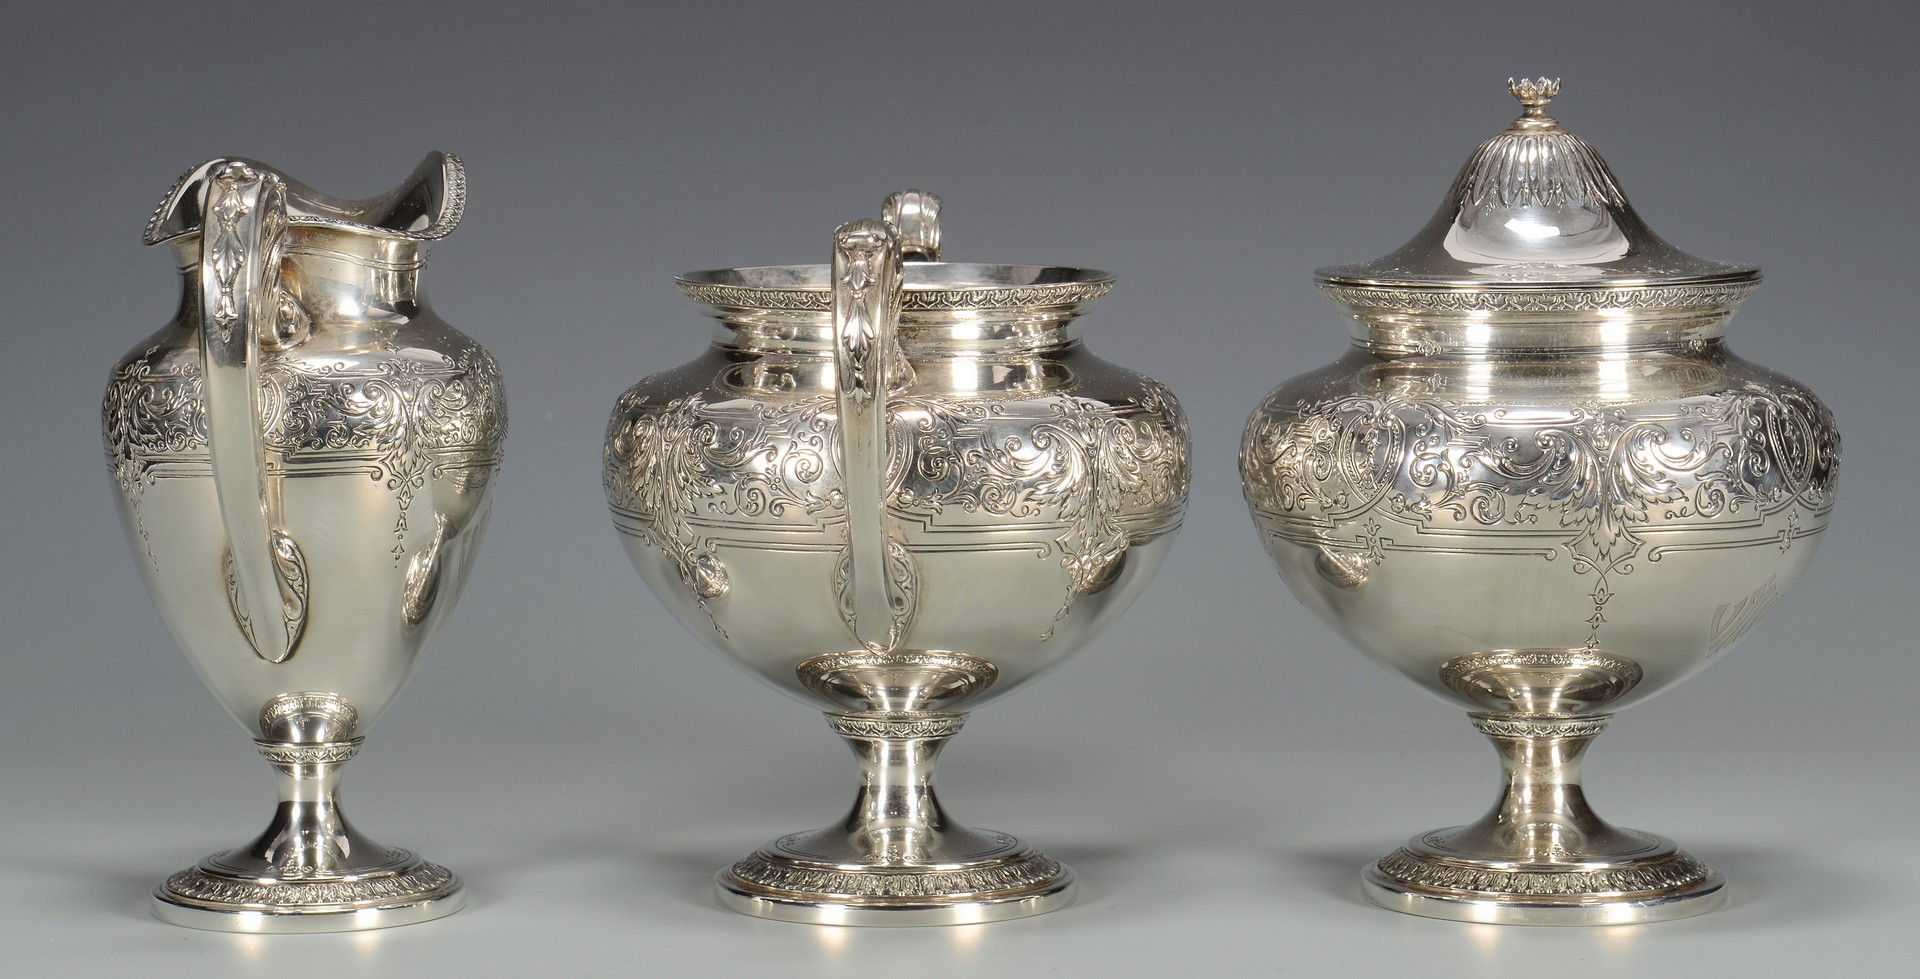 Lot 435: Reed & Barton Aesthetic Style Sterling Tea Set, 5 pcs.